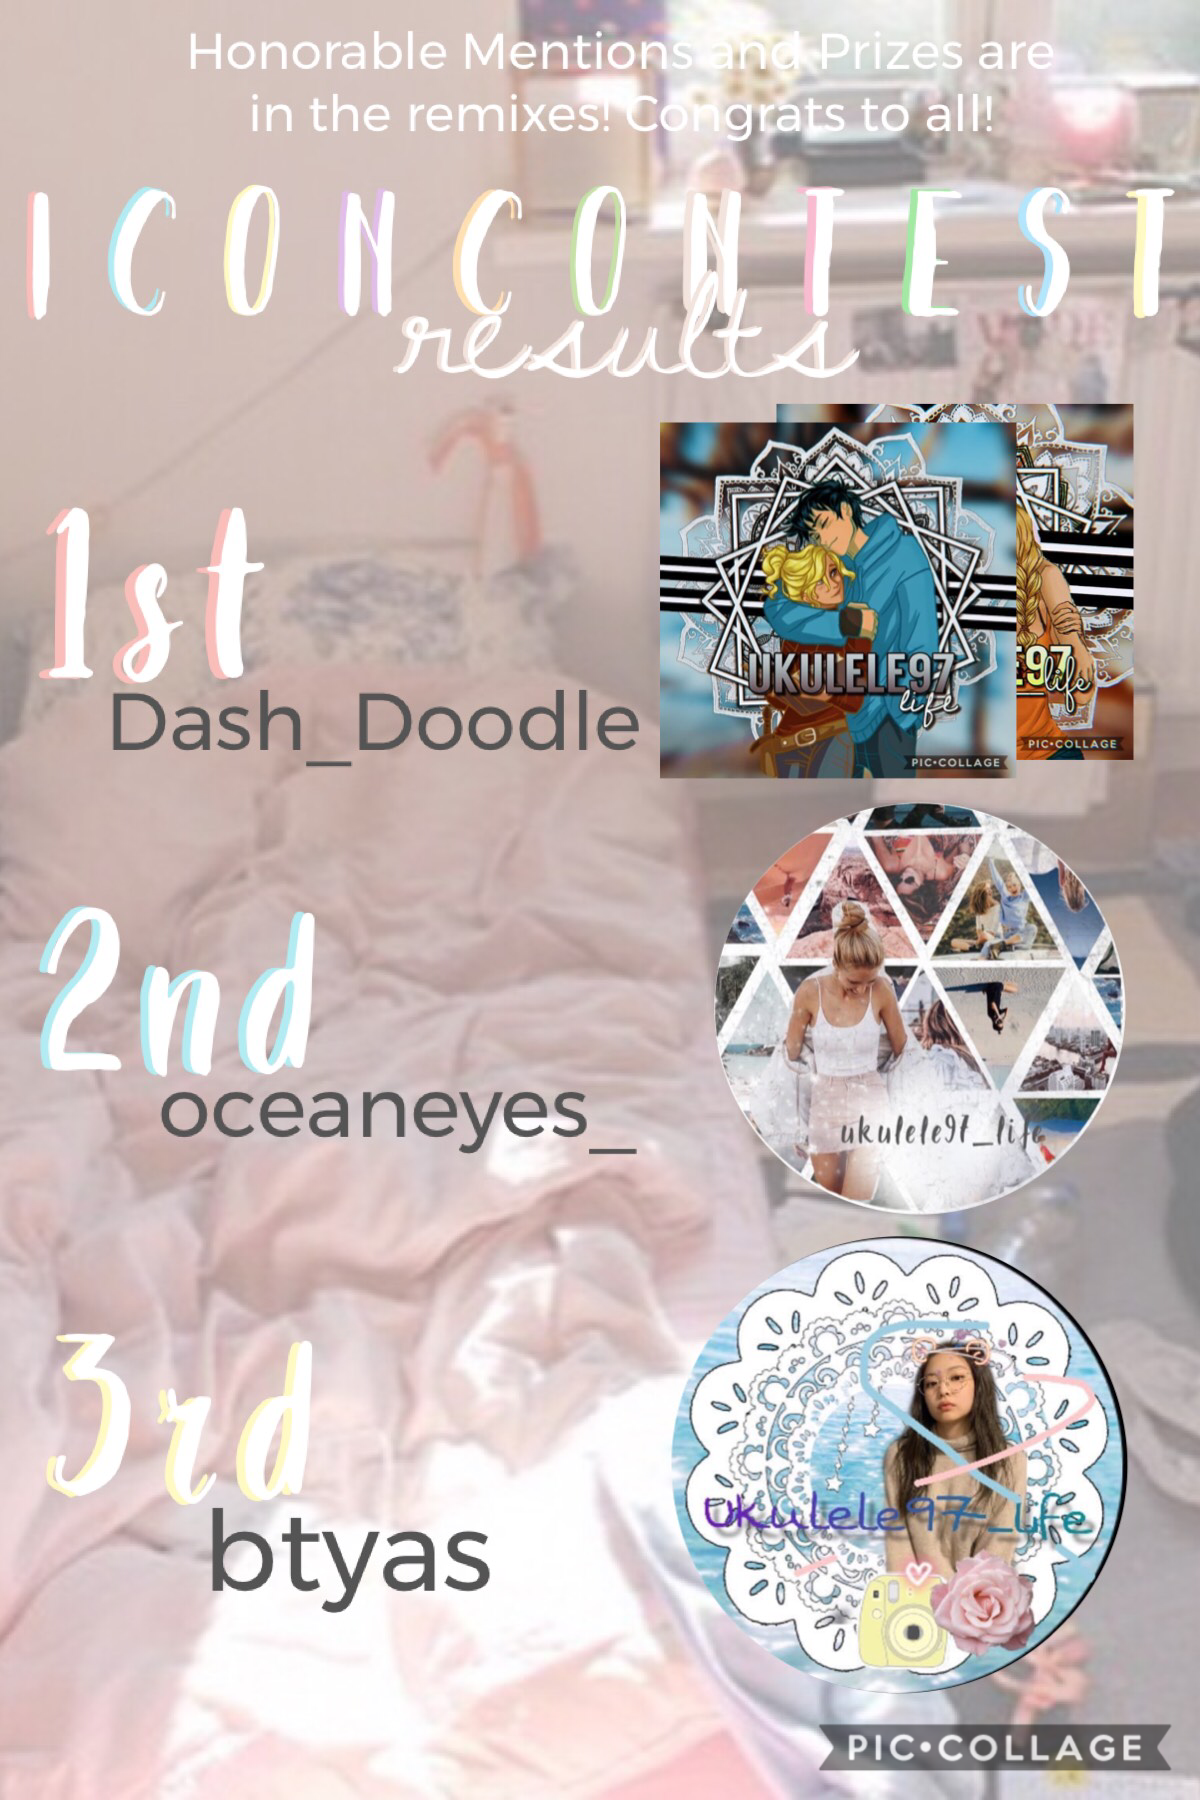 Tappy! 1.26.19. ♥️🥳  Thanks y'all who joined! Prizes and Honorable Mentions are in remixes ♥️ REMEMBER all peeps who joined automatically get a group shoutout!